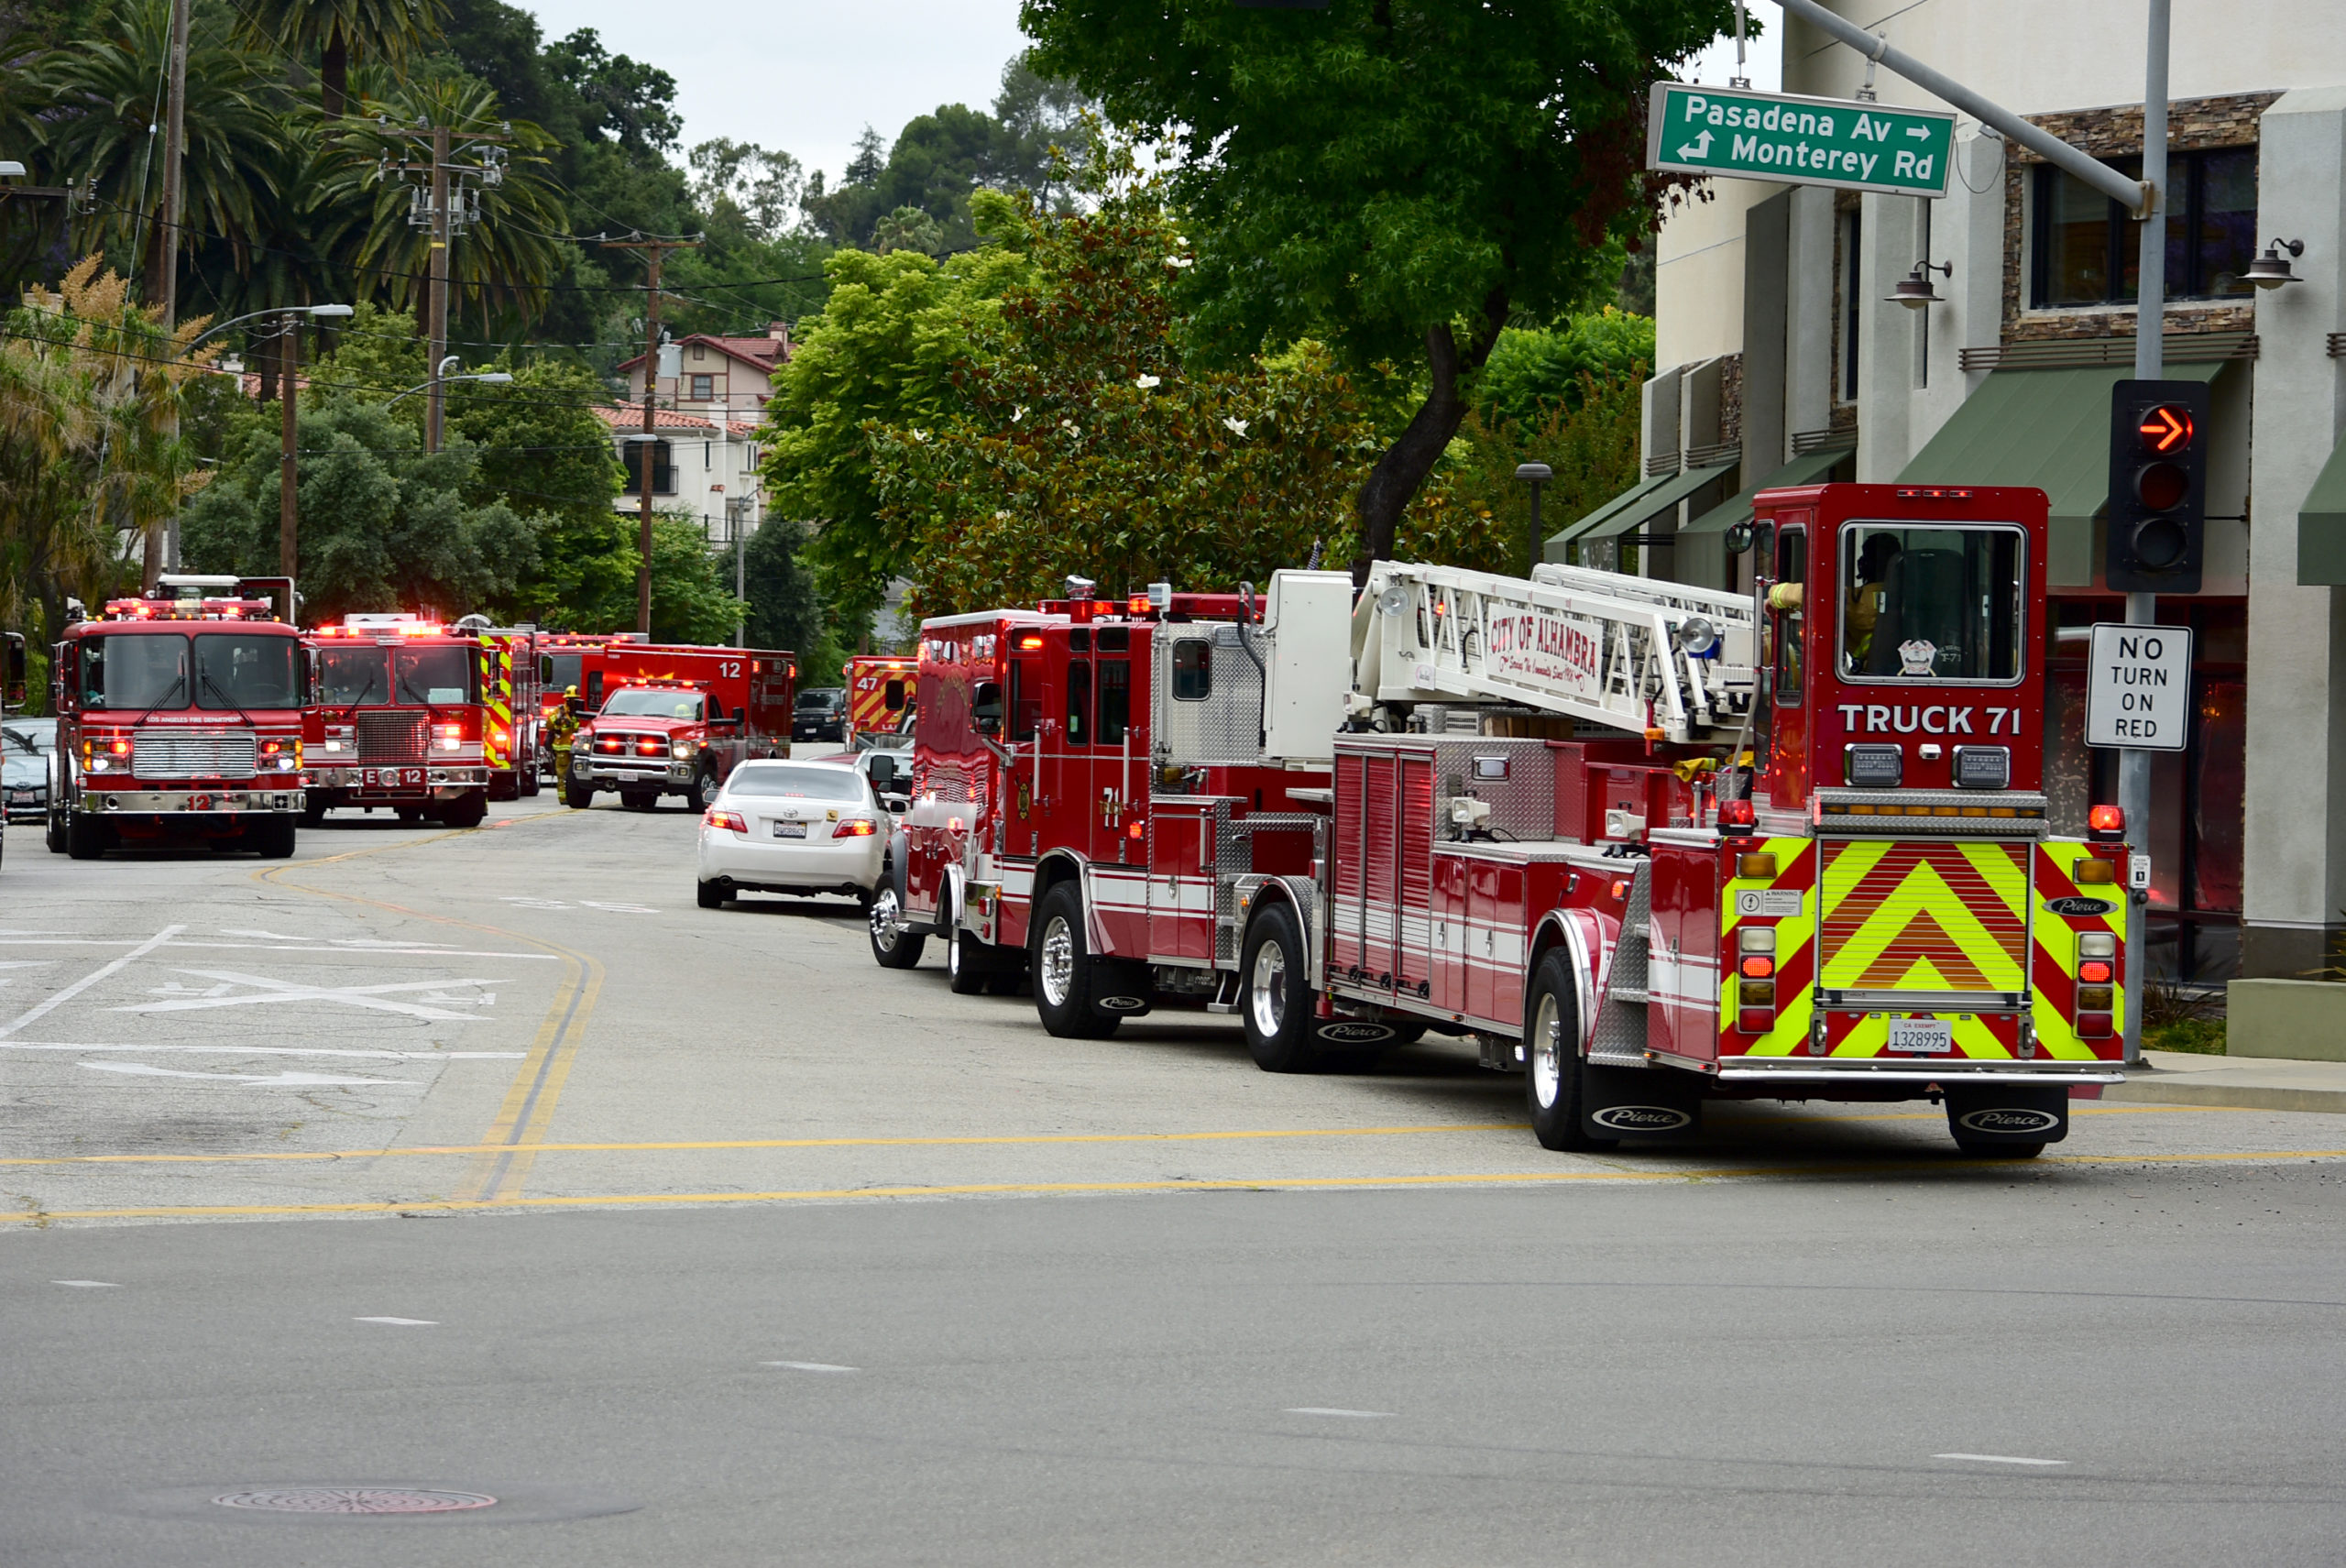 south-pasadena-news-06-05-2020-spfd-house-fire-monterey-road-los-angeles-09